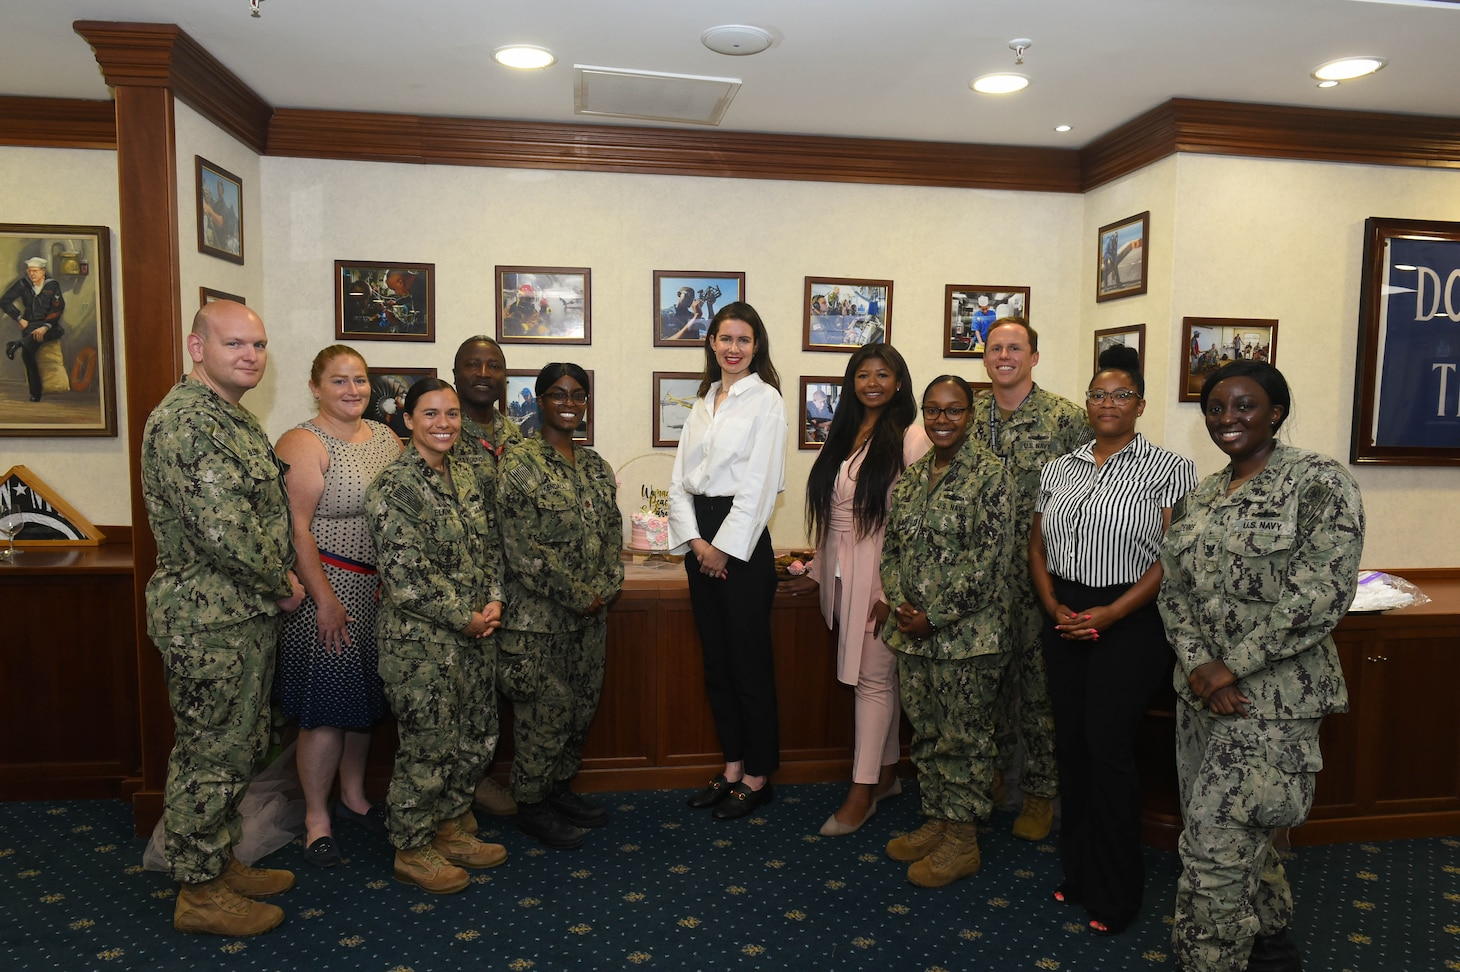 (July 13, 2021) The women, Peace and Security (WPS) working group attend a training held by U.S. Africa Command (USAFRICOM) Gender Advisor Lindsey Brothers onboard Naval Support Activity Naples, Italy, July 13, 2021. U.S. Naval Forces Europe-Africa/U.S. Sixth Fleet, headquartered in Naples, Italy, conducts the full spectrum of joint and naval operations, often in concert with allied and interagency partners in order to advance U.S. national interests and security and stability in Europe and Africa.